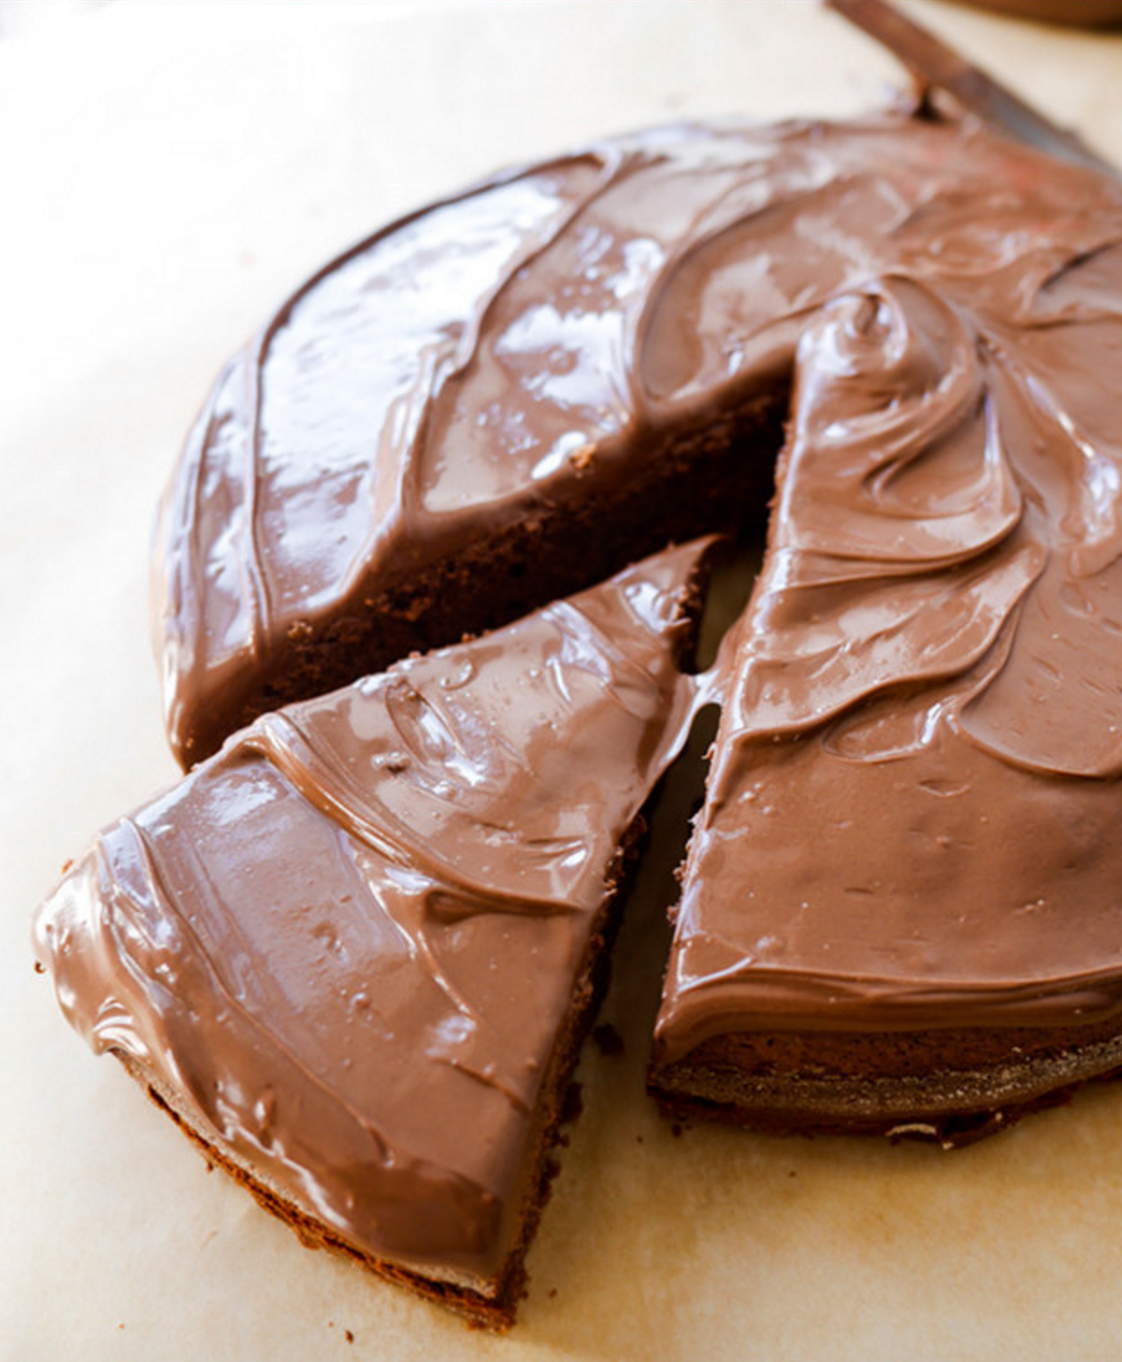 What's The Best Cake You've Ever Made?